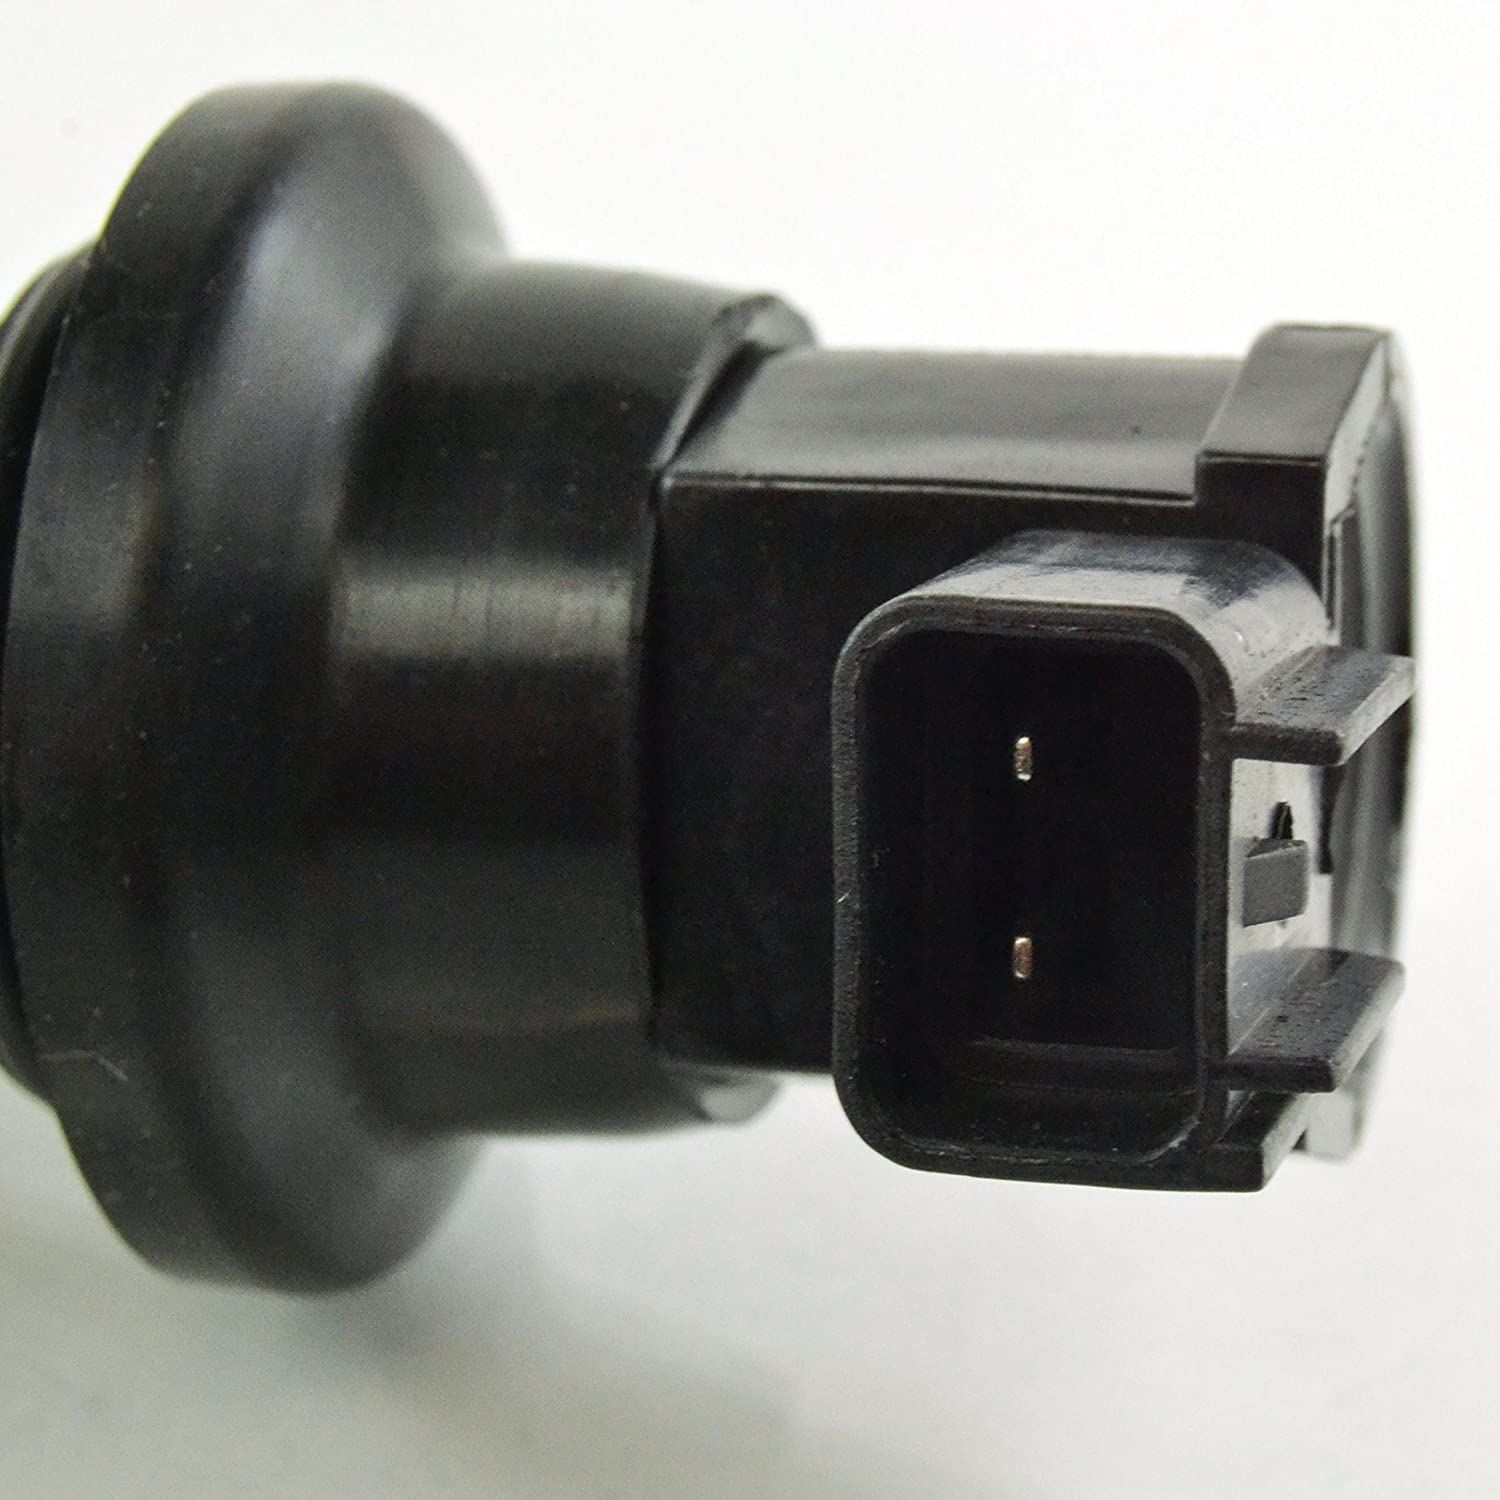 Ignition Stick Coil For Yamaha YZ 450 F//WR 450 F//YFZ 450 2003-2013 Cap OEM Repl.# 5TA-82310-00-00 5TA-82310-10-00